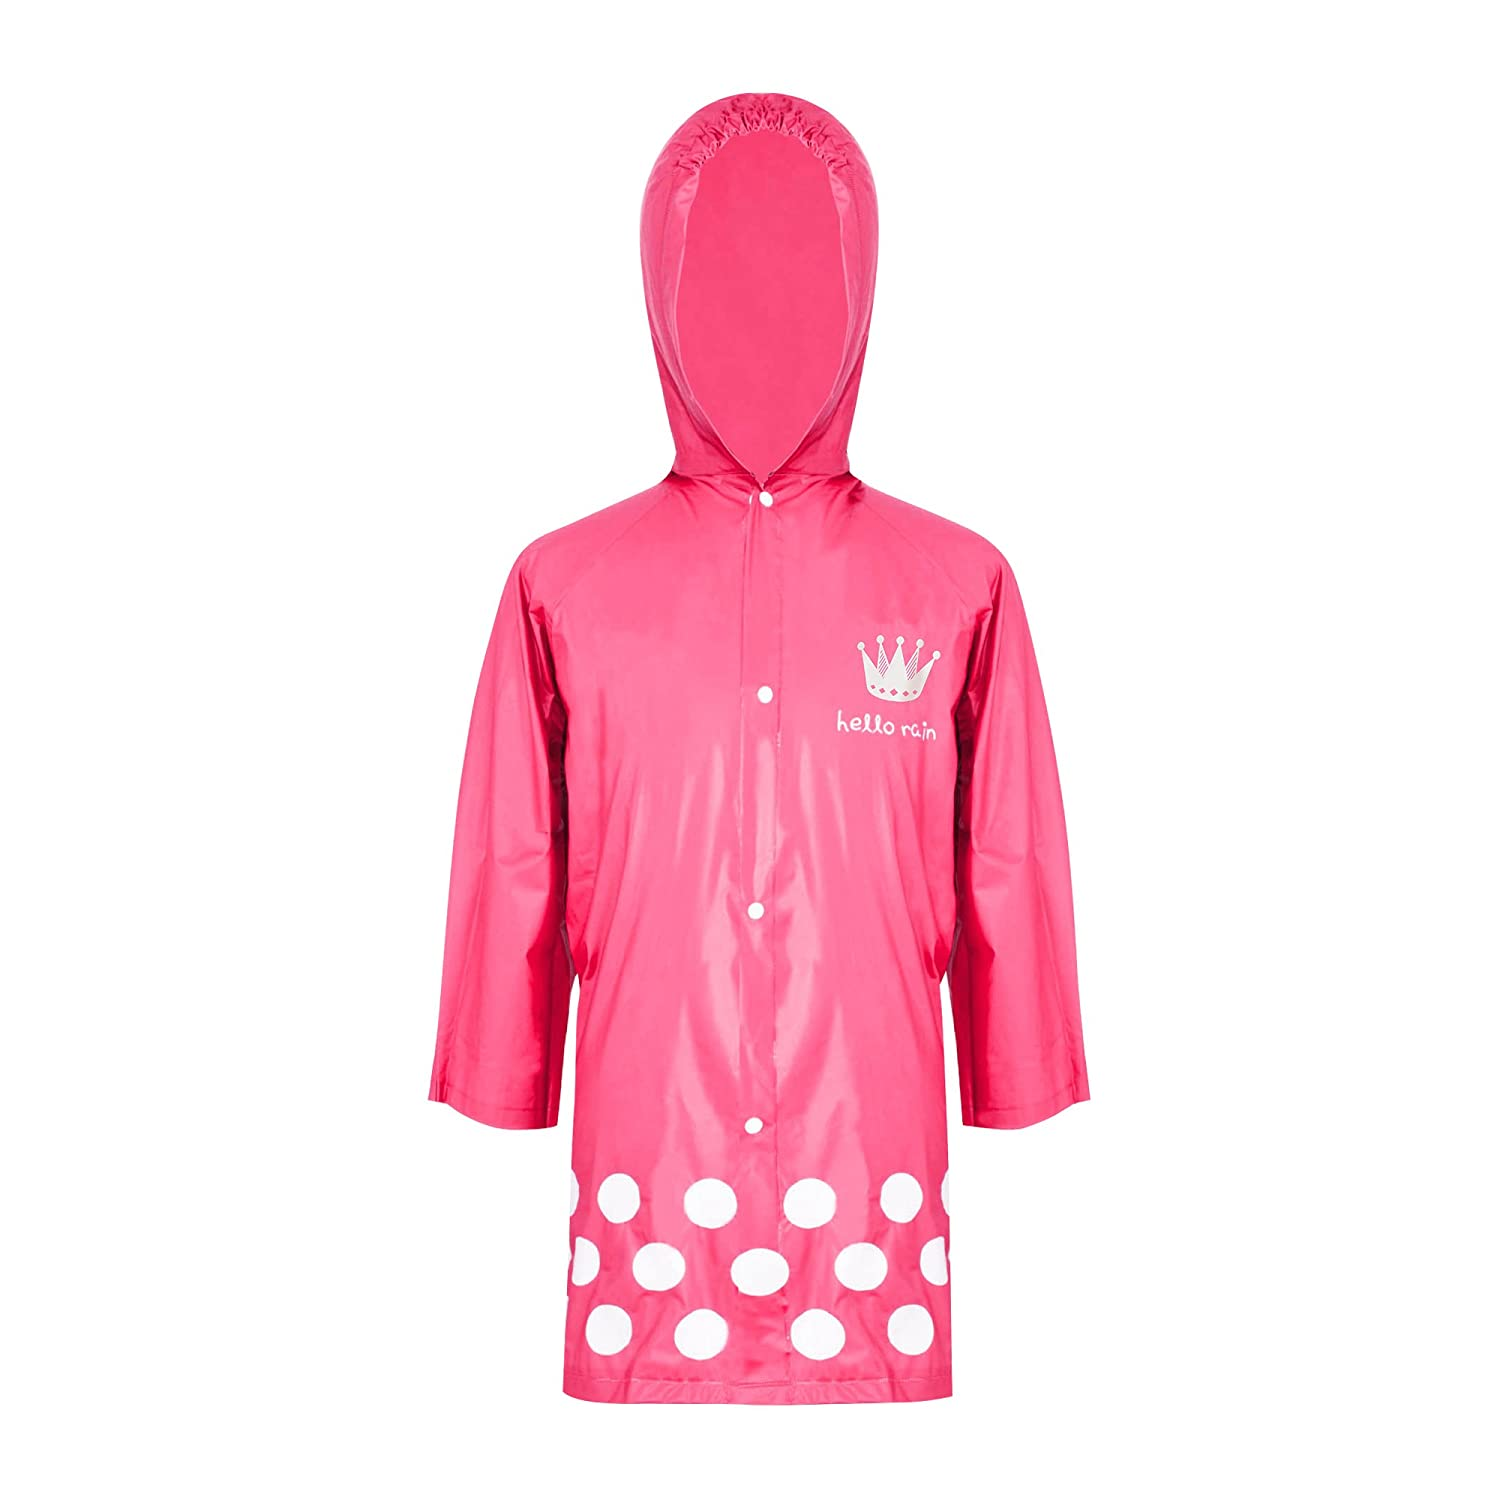 ZDHGLOBAL Children Rain Jacket Portable Poncho and Kids Raincoat With Hoods and Sleeves